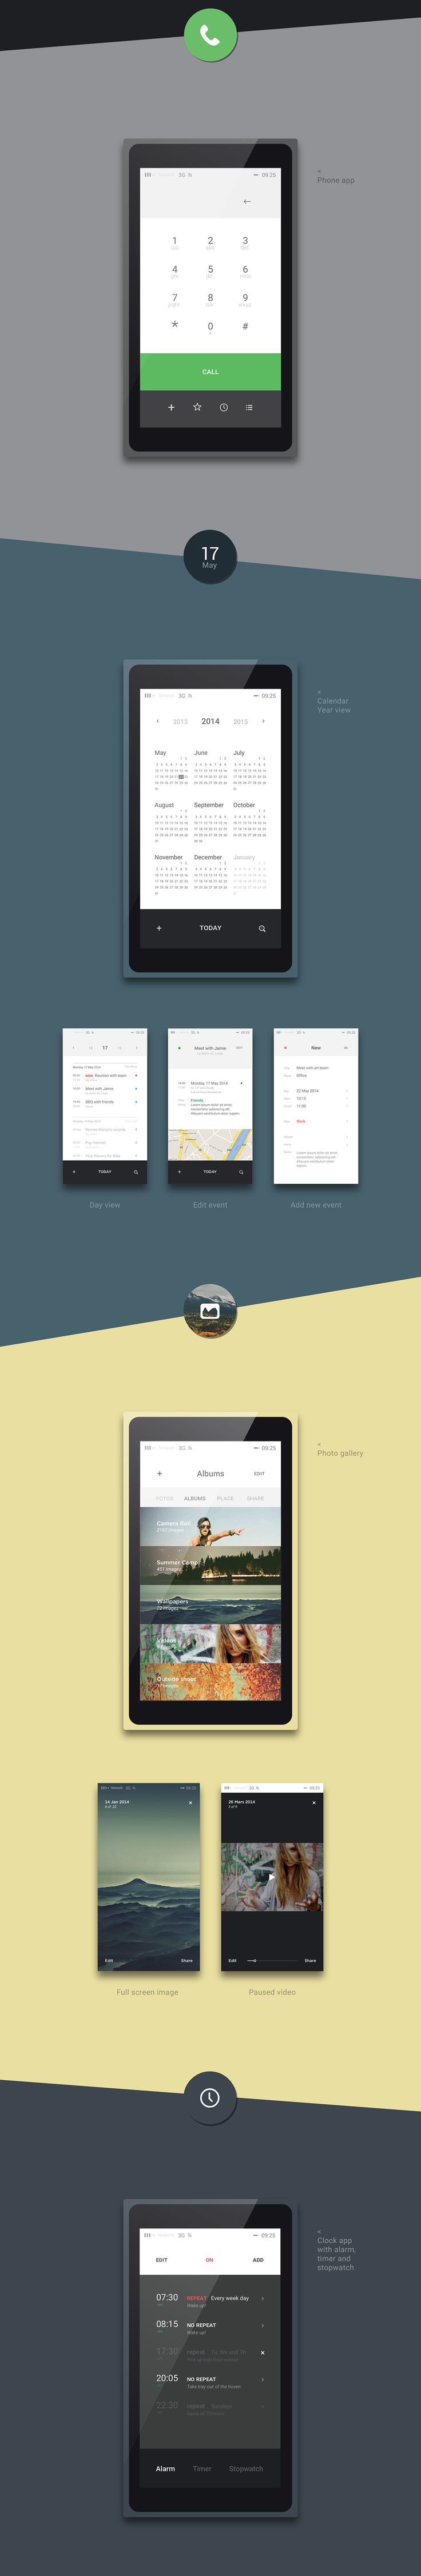 Bang OS — Mobile Operative System on Behance